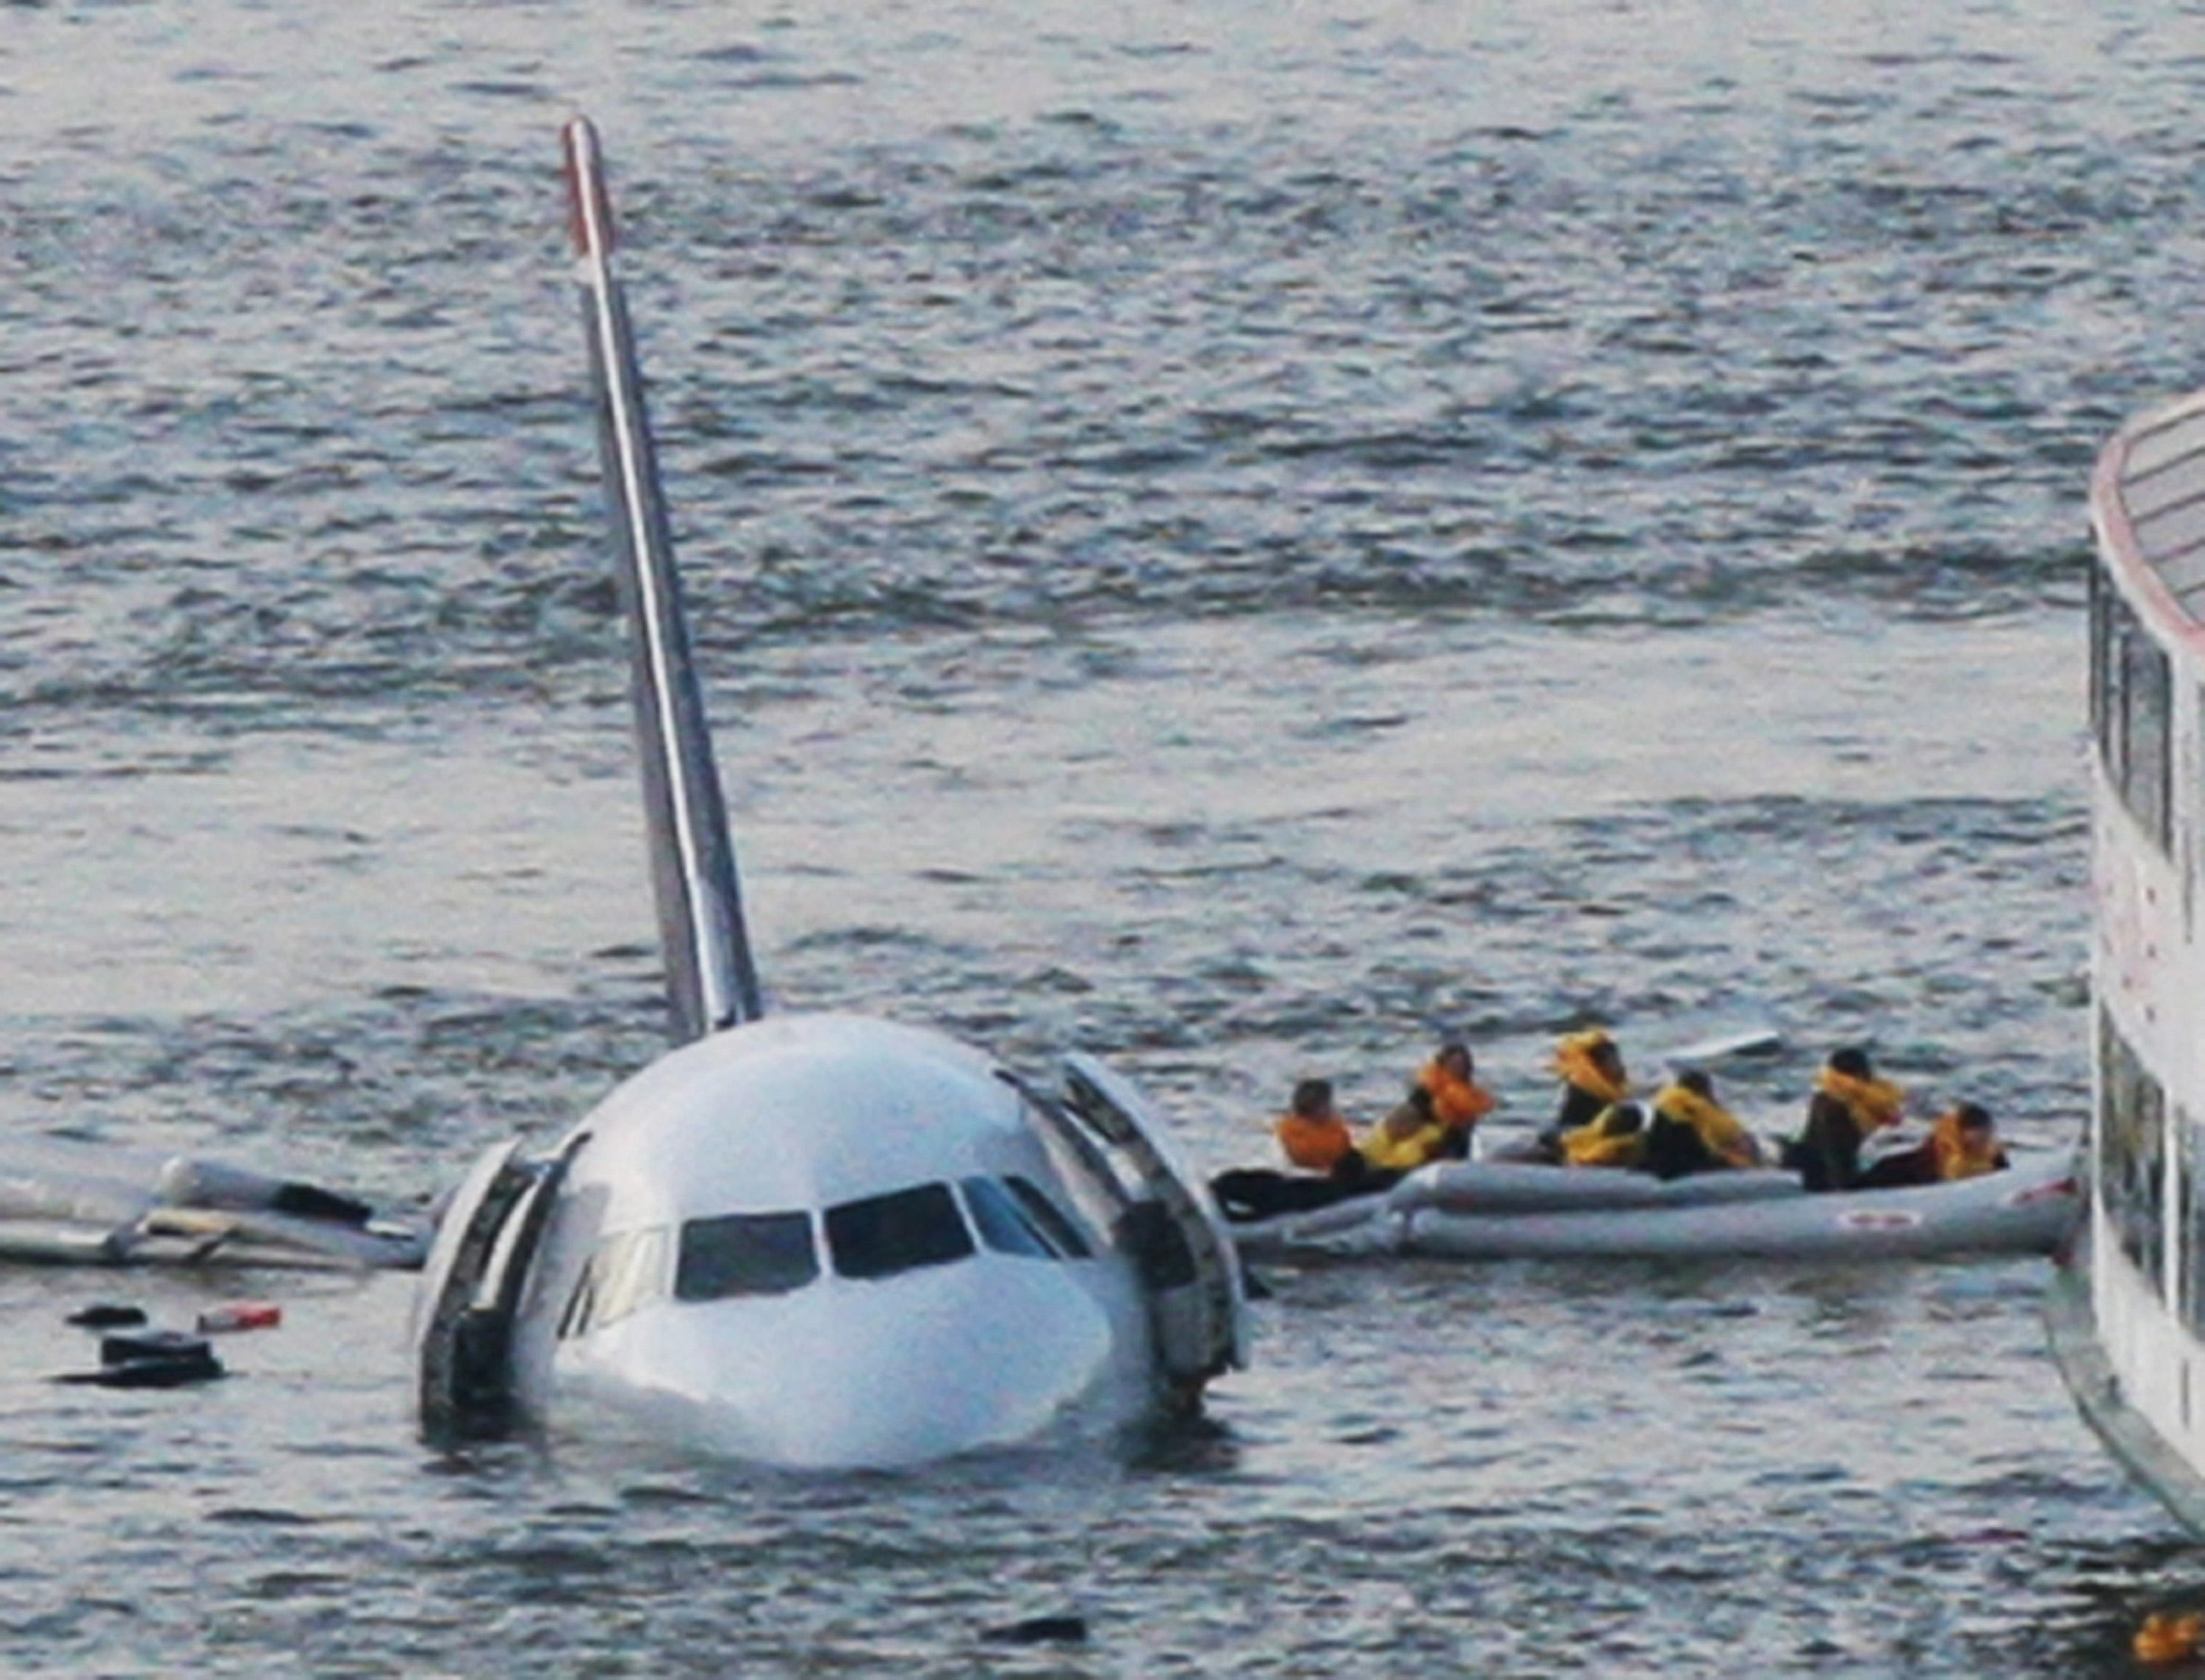 "Slide 56 of 85: What do the pilots do if there's a loss of power? What's the point of no returns?    The total loss of power is extraordinarily rare. The first action would be to relight the engines. If that failed, a ditching would be required, as was the case with 2009's ""Miracle on the Hudson.""  After a bird strike disabled both engines minutes after taking off from New York's LaGuardia Airport, Captain Chelsey Sullenberger and First Officer Jeffrey Skiles glided their US Airways Airbus A320 into the Hudson River in what was called the ""most successful ditching in aviation history."""